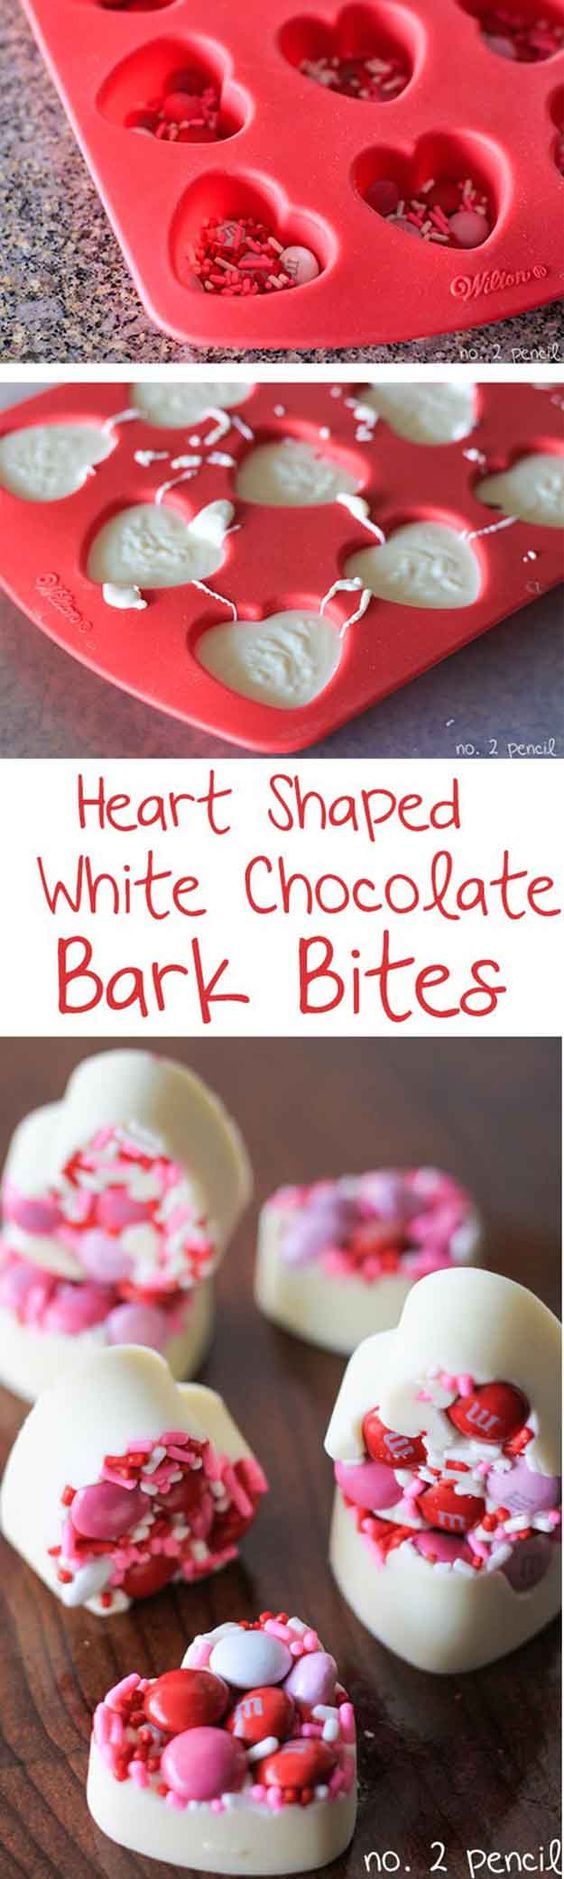 Heart Shape White Chocolate Bark Bites|25 Valentines Day Treats That Look Way Too Good to Eat,see more at: http://diyready.com/valentines-day-treats-that-looks-too-good-to-eat/